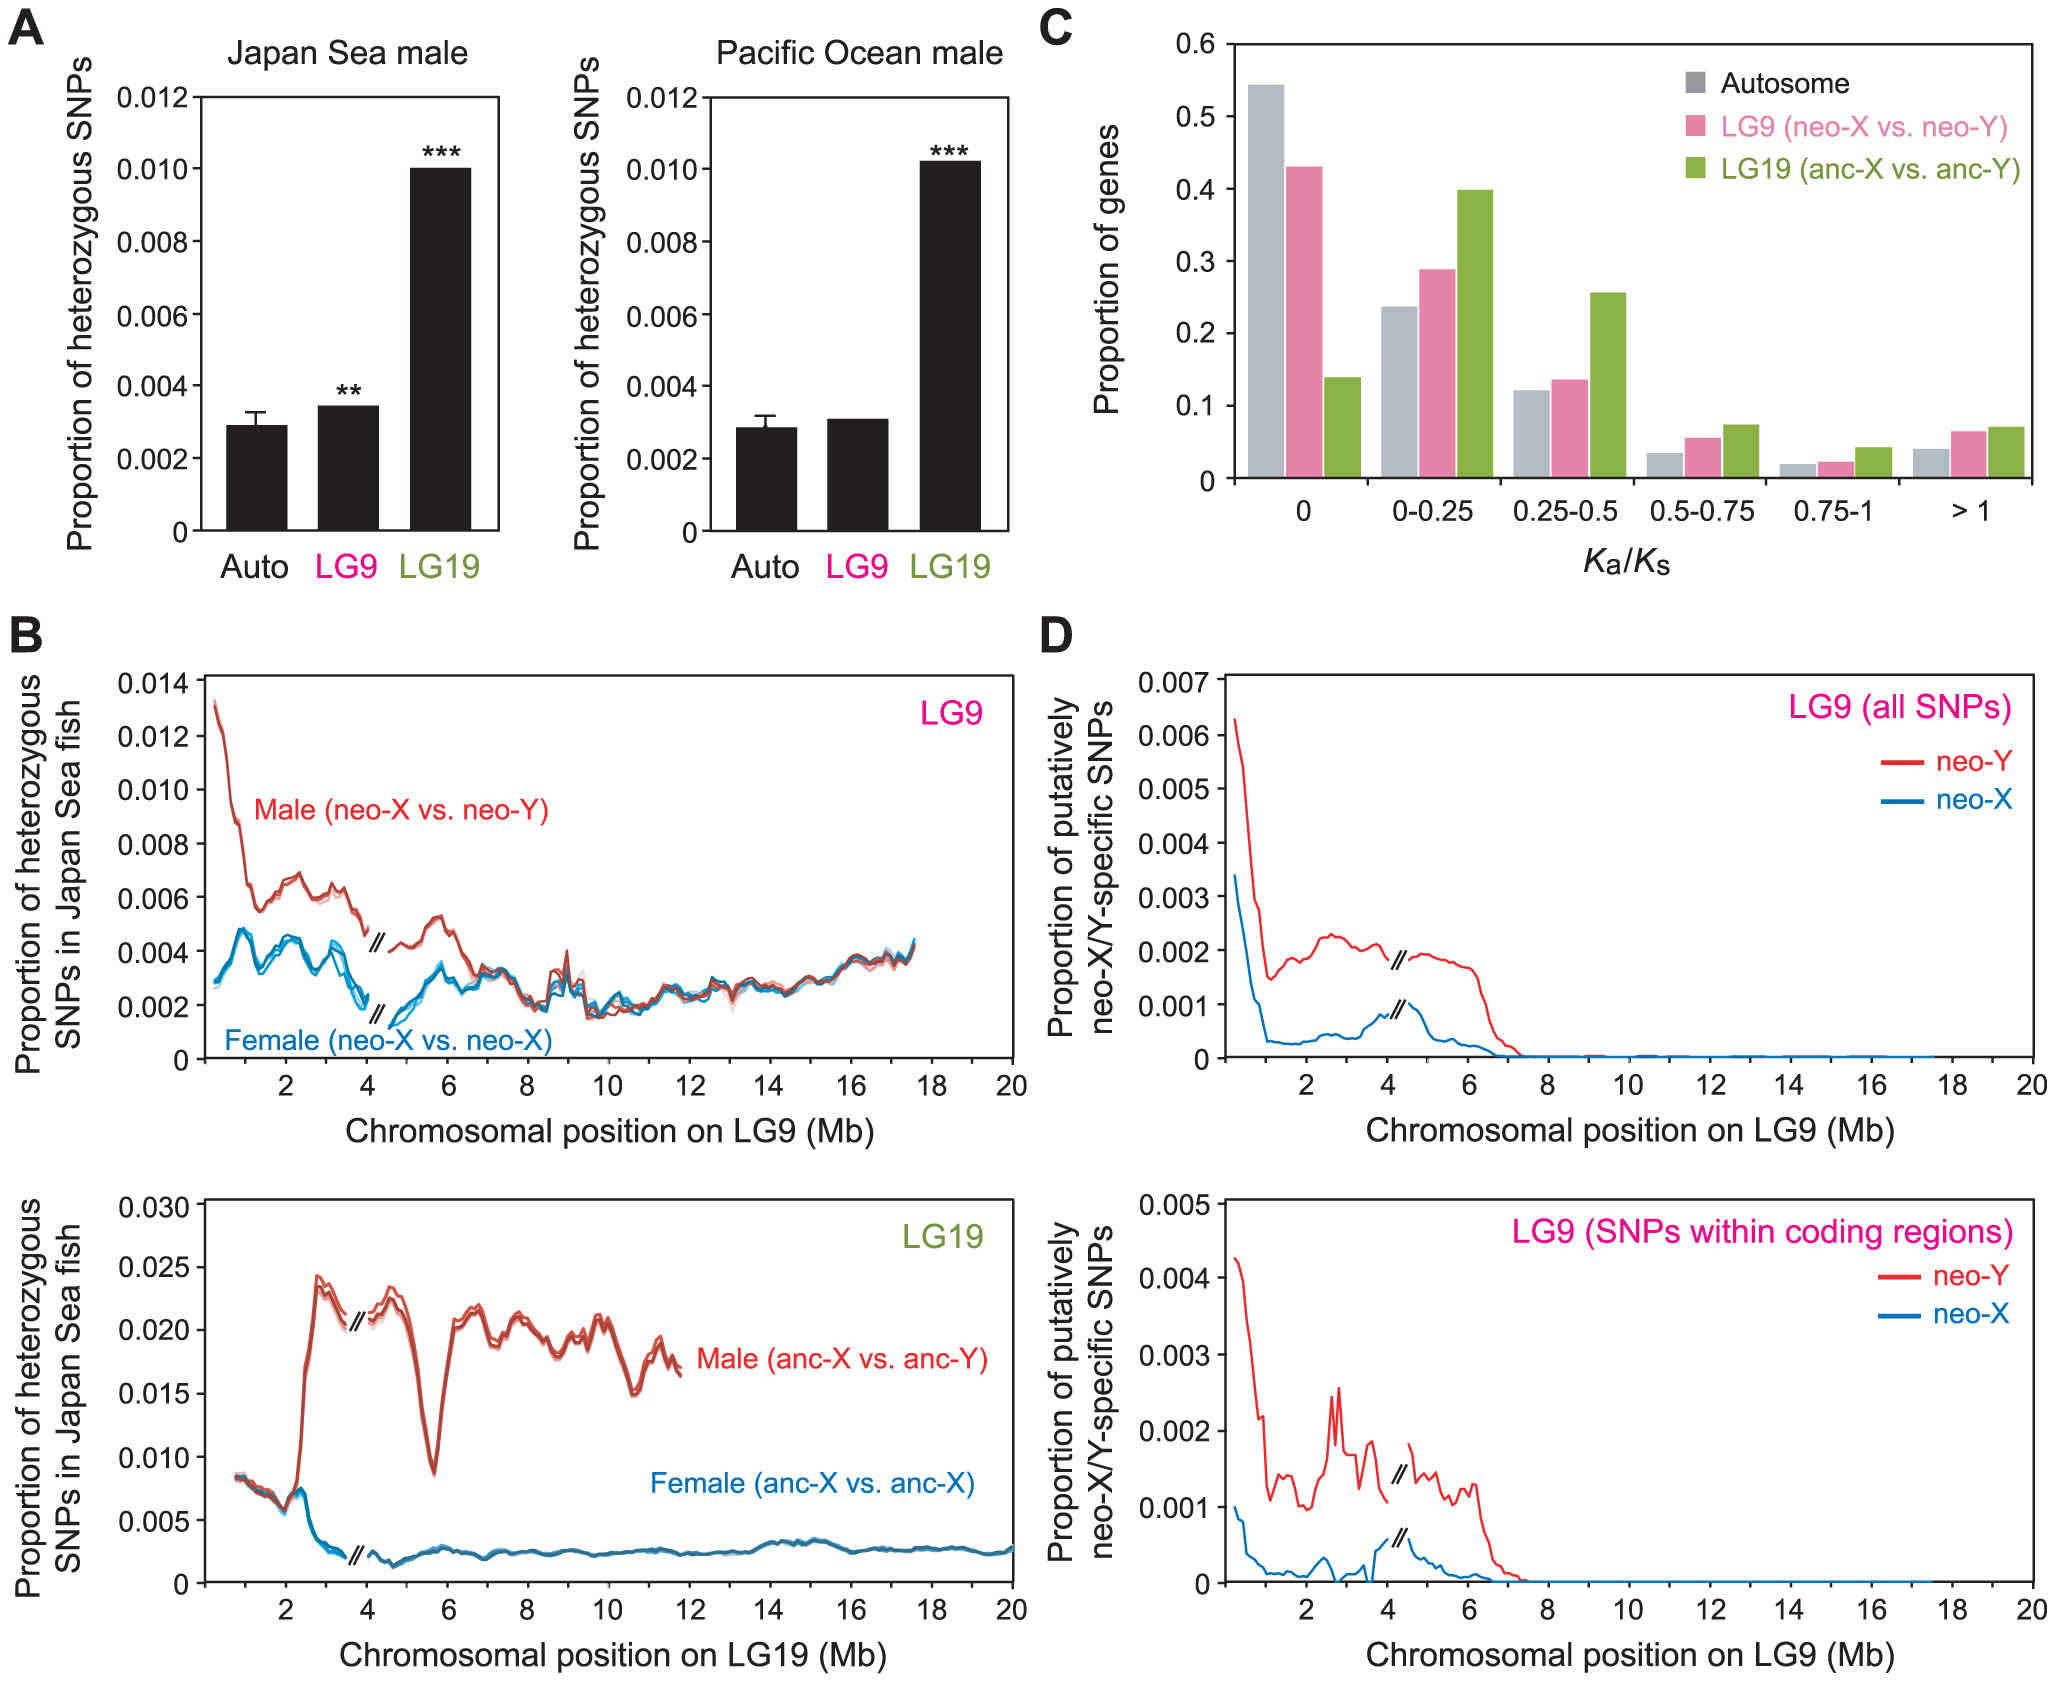 Nucleotide divergence between the Japan Sea neo-X and the neo-Y chromosomes.